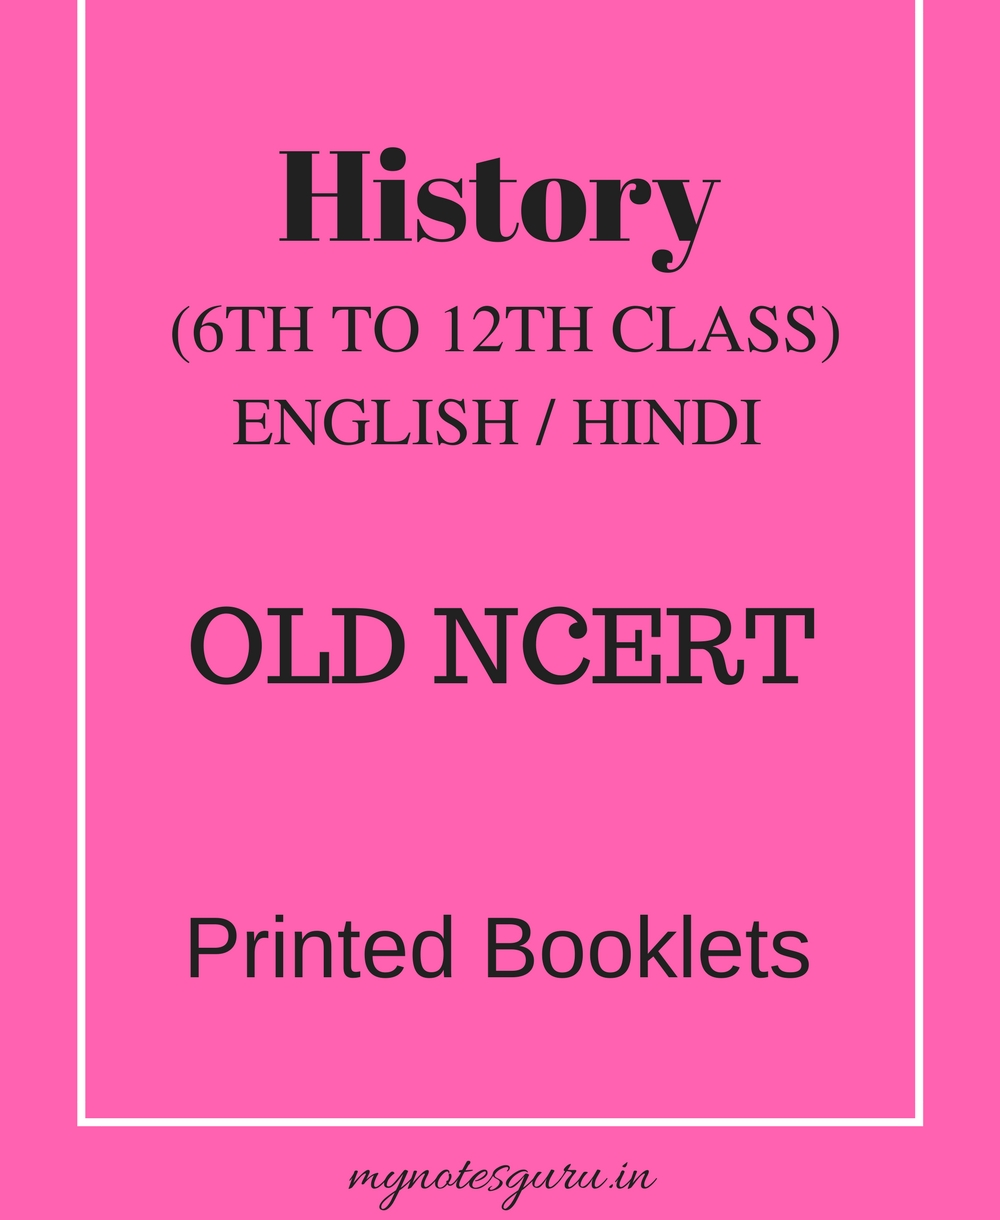 Old Ncert History Book In Hindi